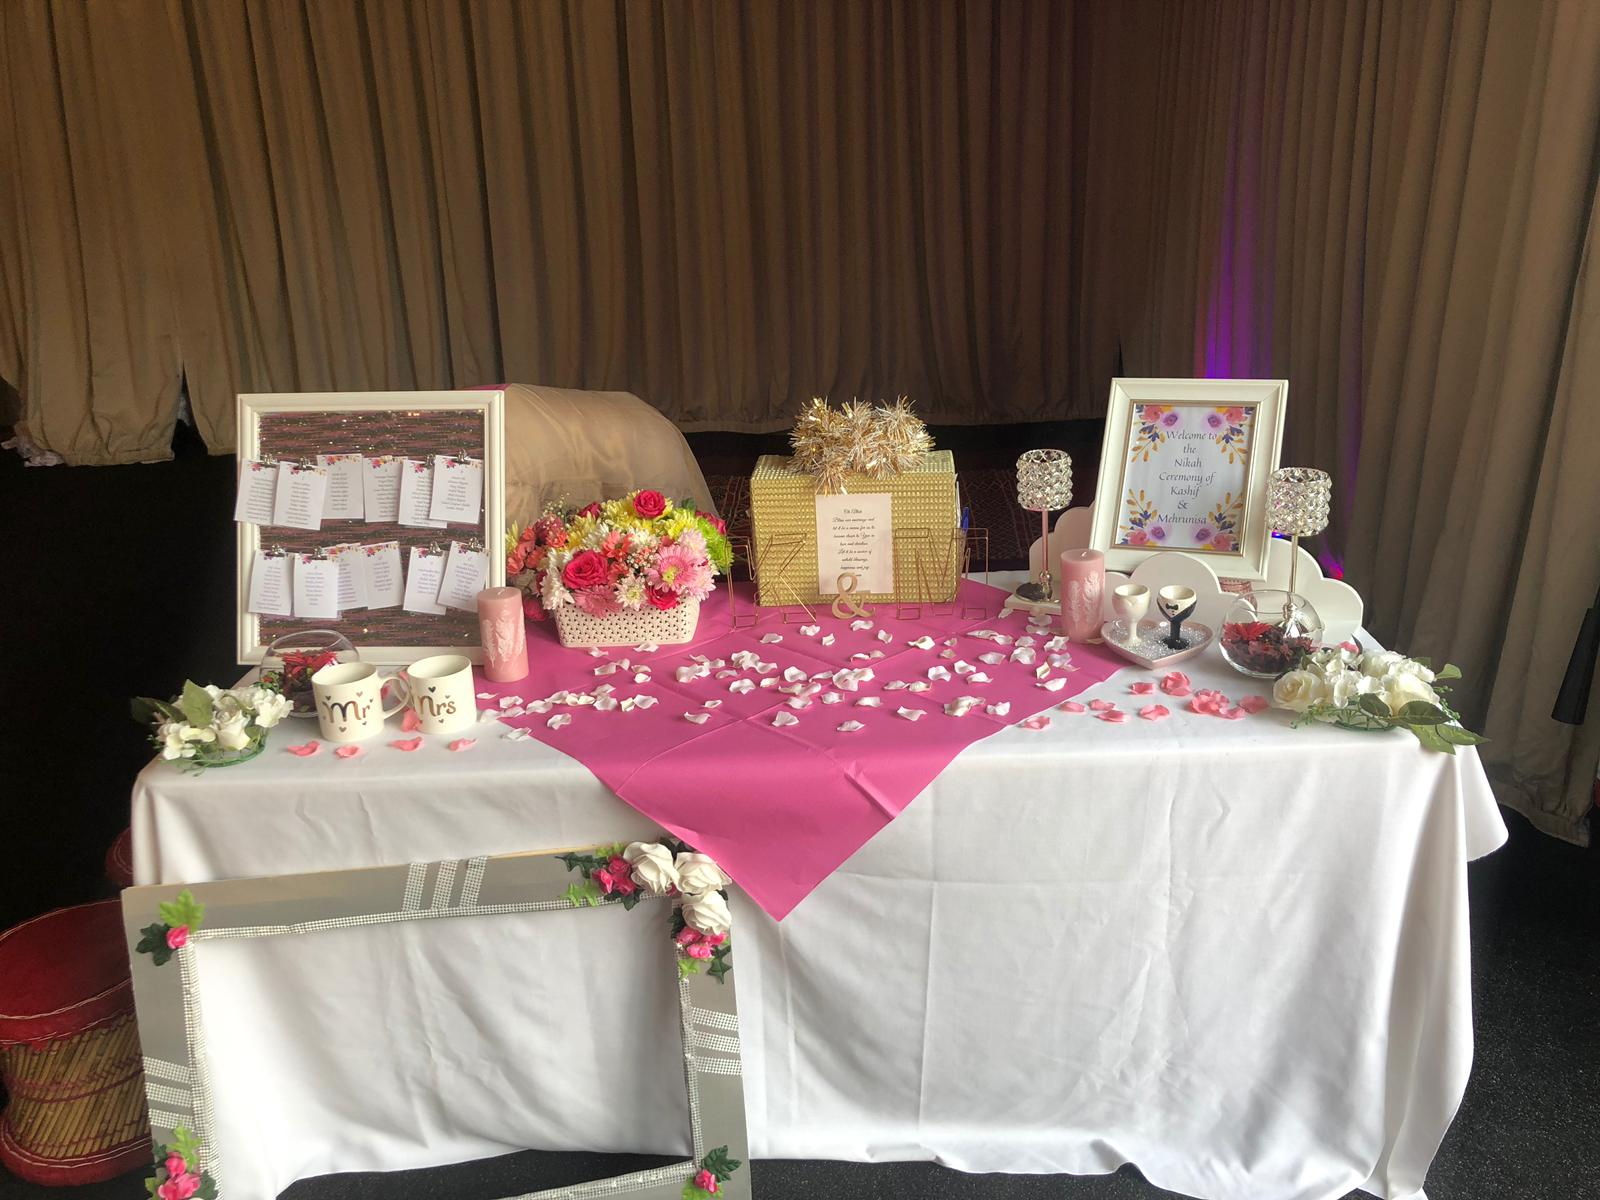 Friends Forever Events